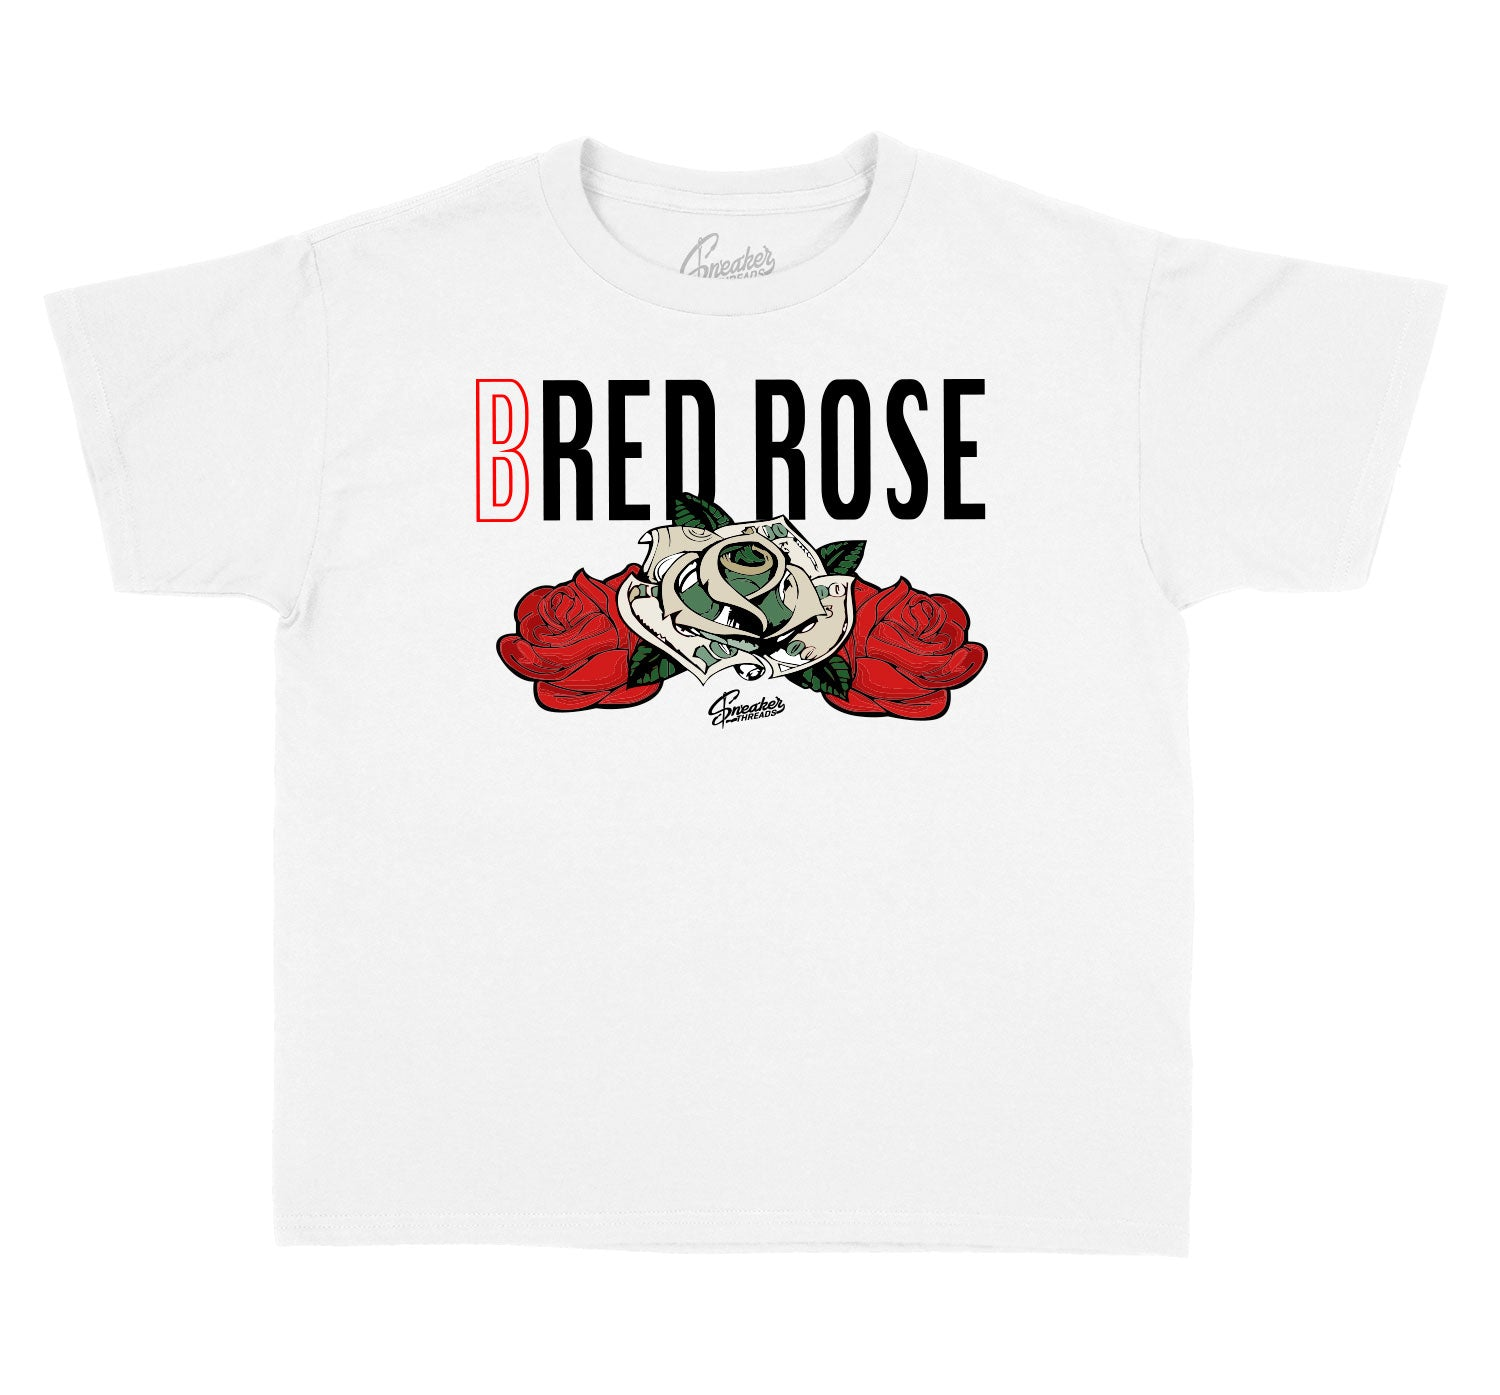 Kids - Bred 11 Bred Rose Shirt